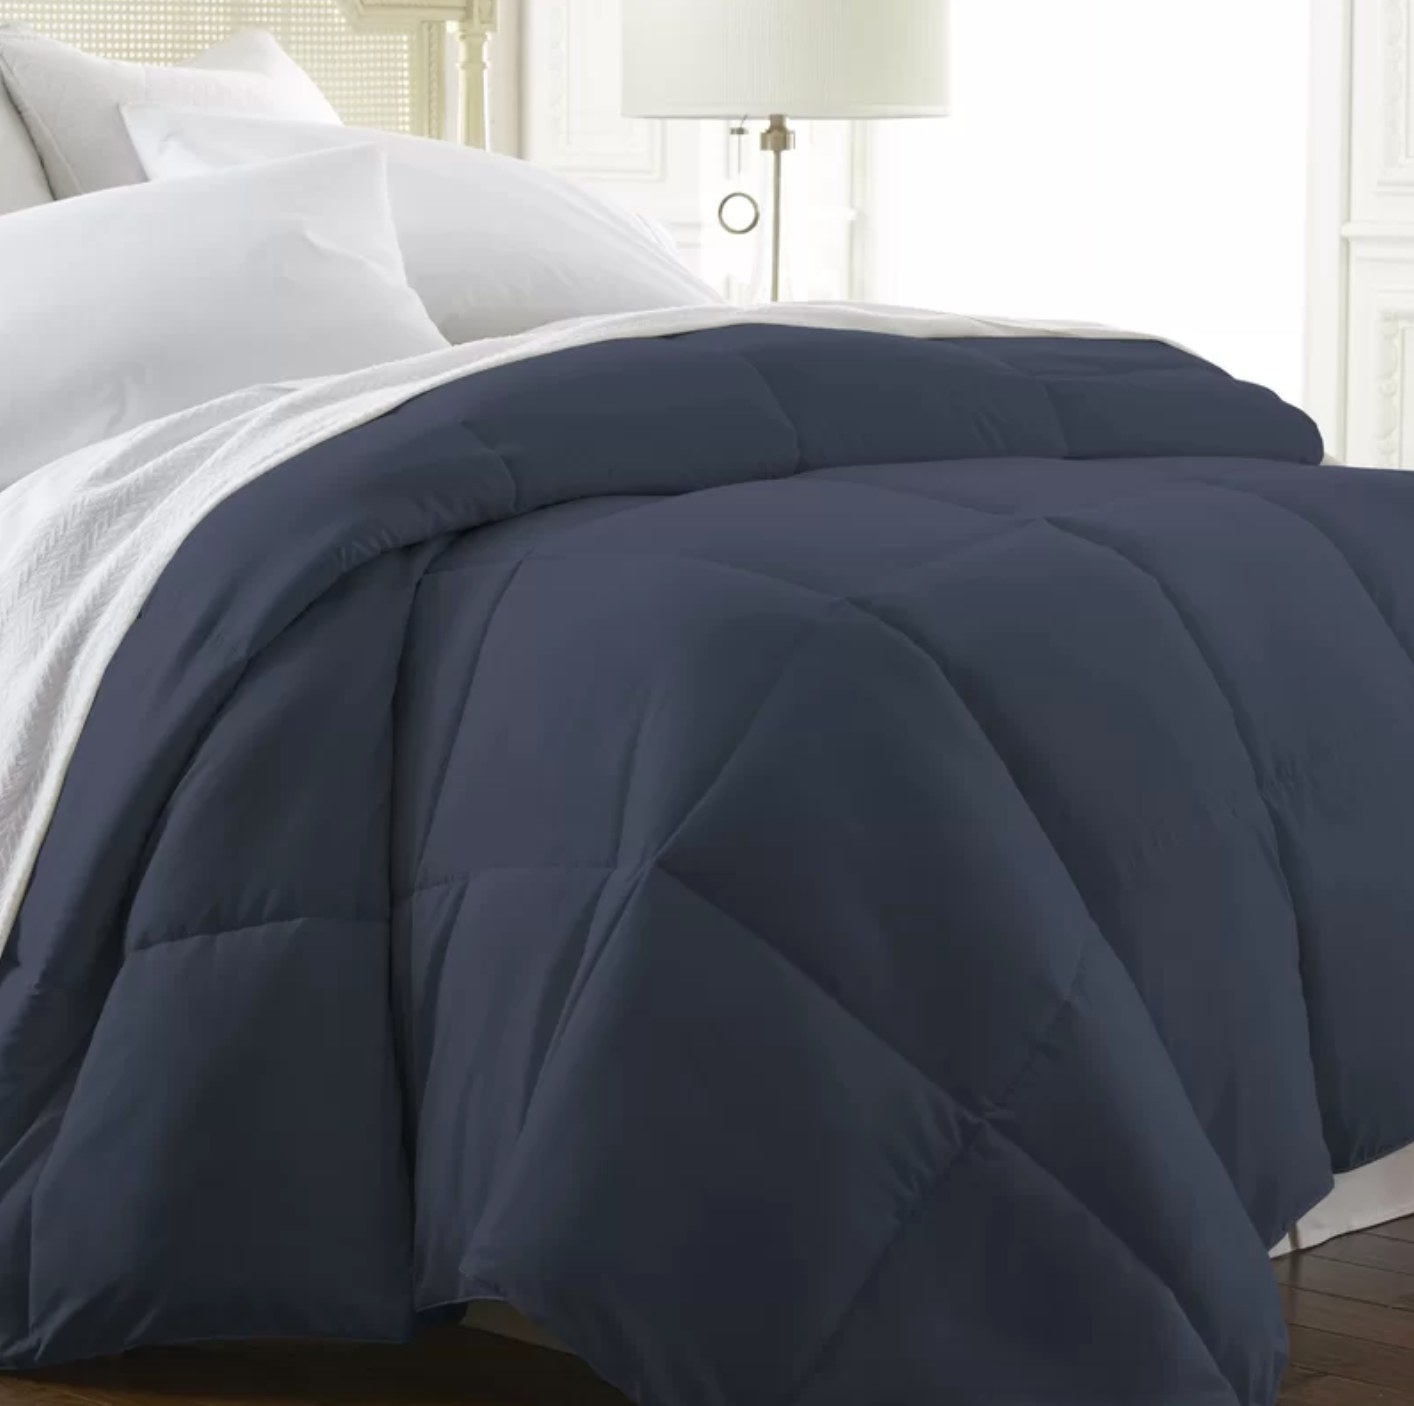 The alternative down comforter in navy